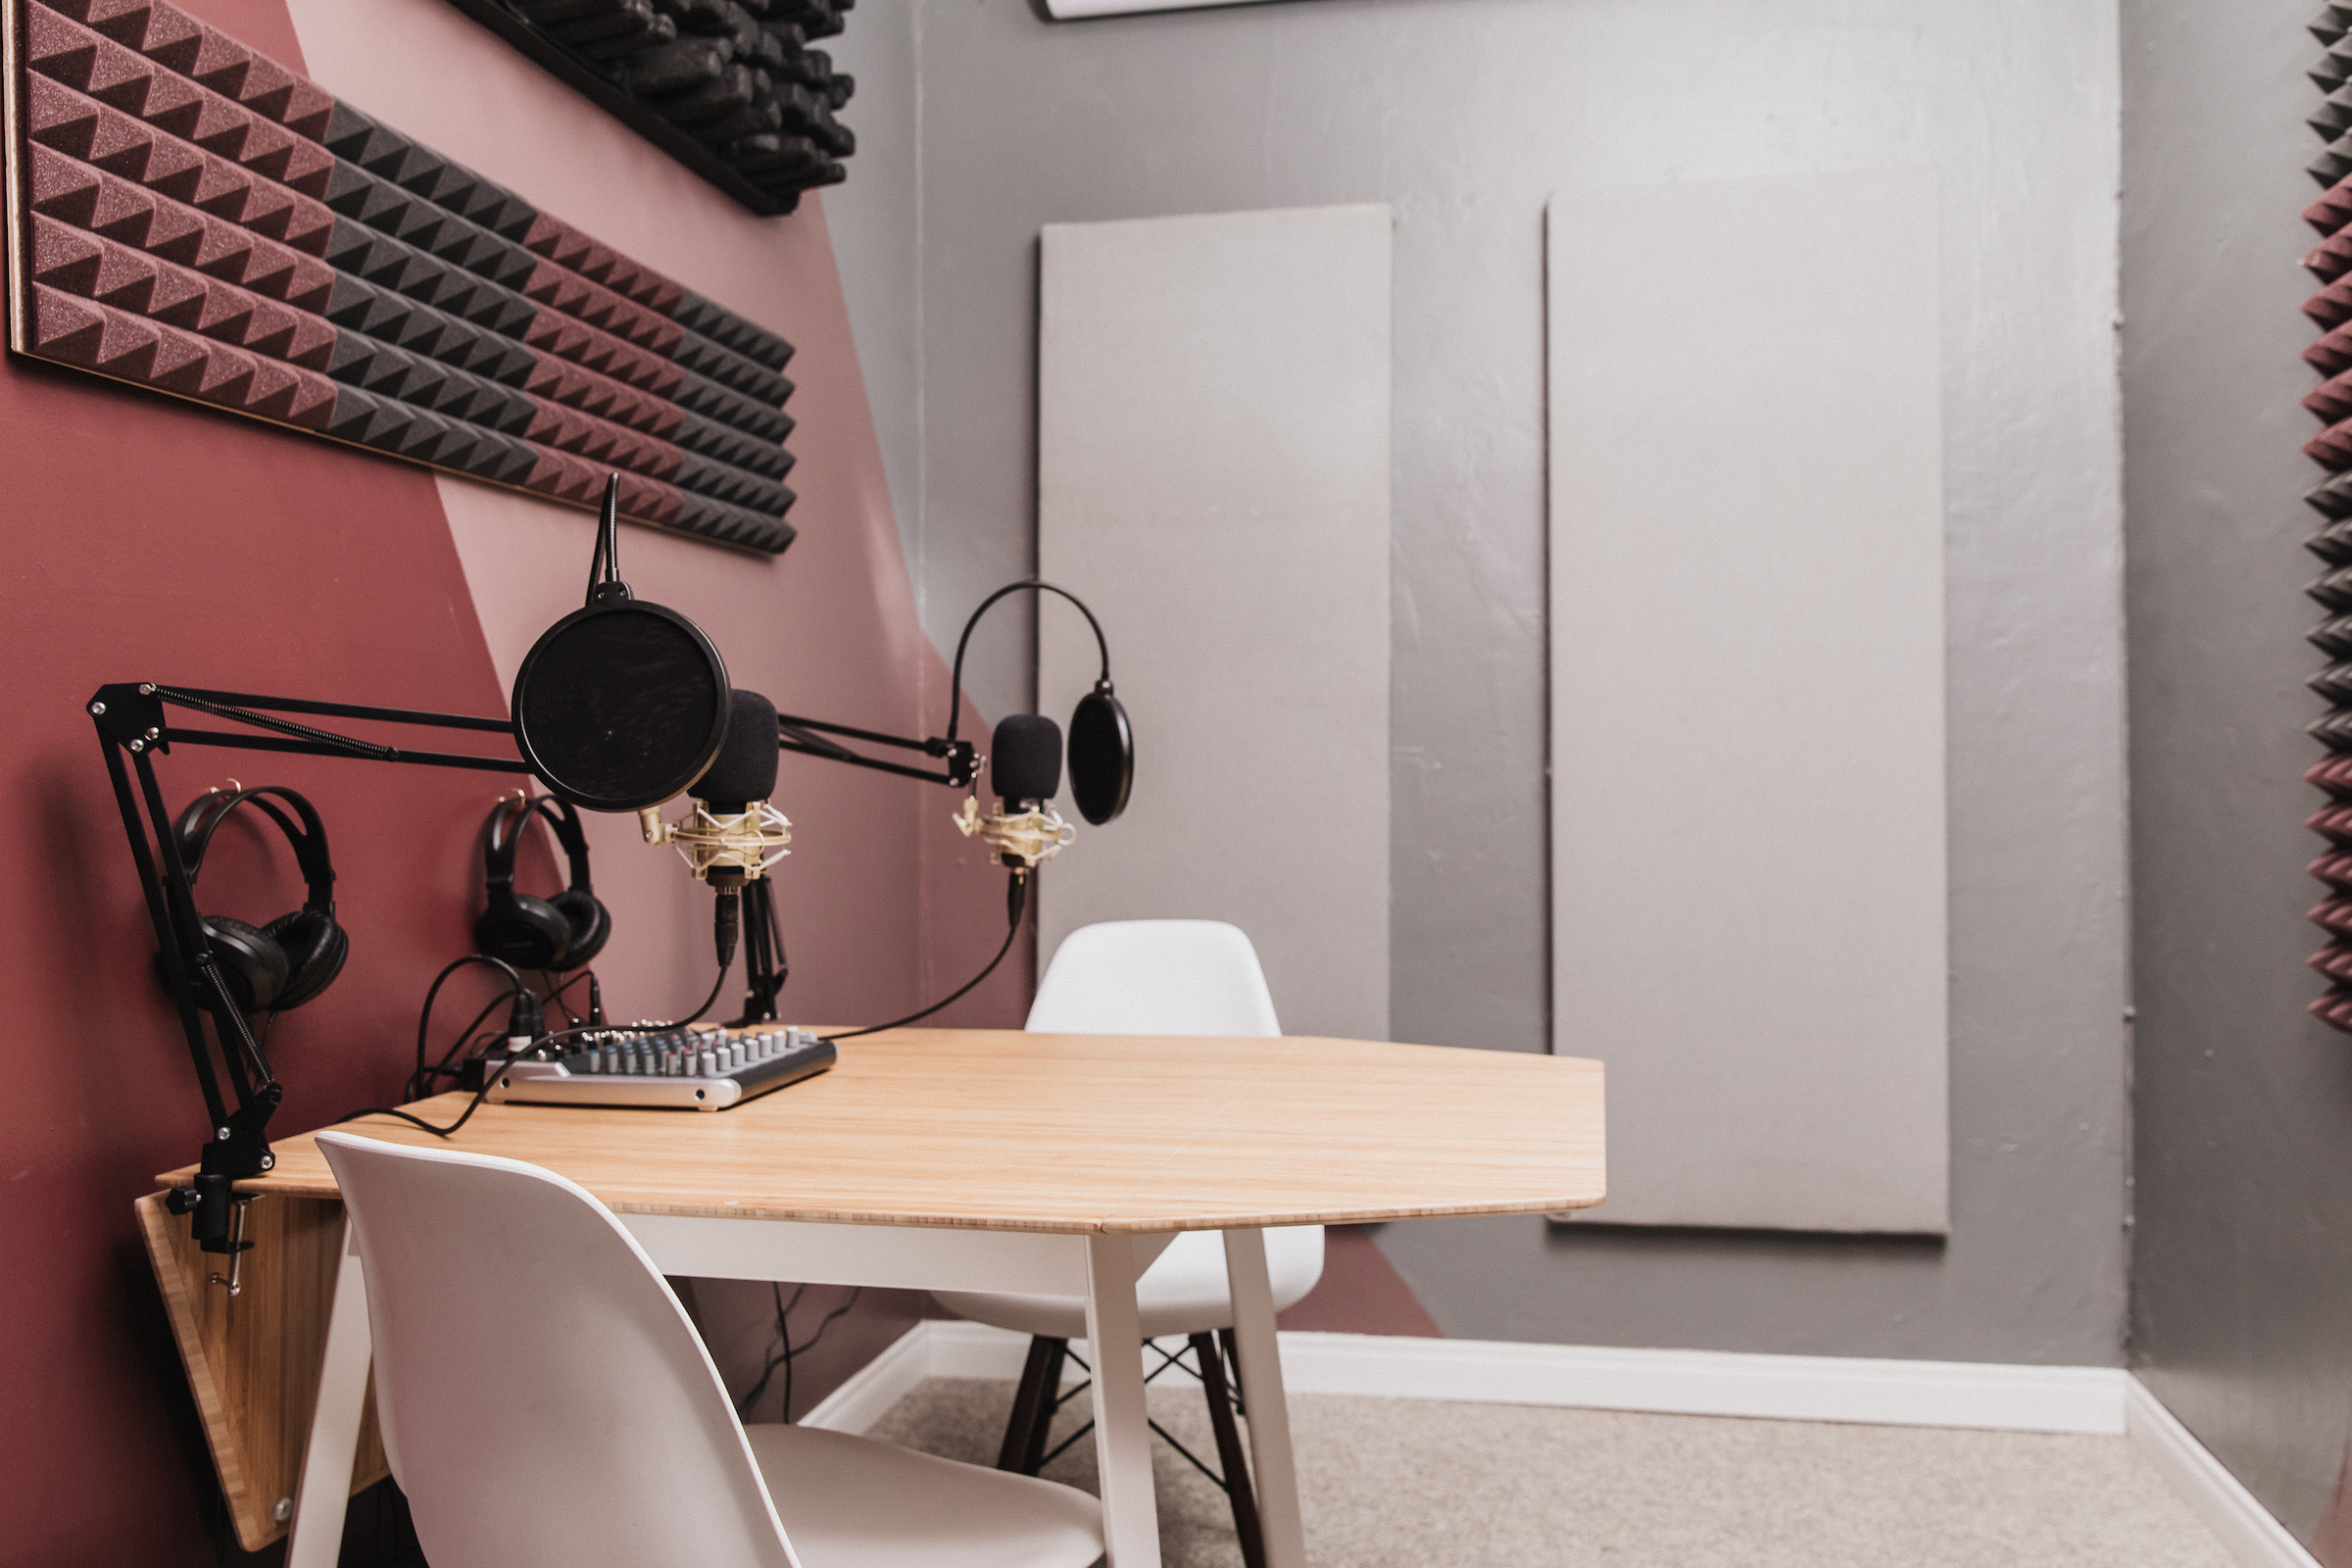 PODCAST & RECORDING STUDIO - 4 STUDIO XLR MICROPHONES WITH POP FILTERS AND SWING STANDSUSB MIXER4 MICROPHONE AMPLIFIERECHO PREVENTION FOAM INSTALLATION2-4 PERSON DROP LEAF TABLEOVERHEAD FANSRENTAL OF STUDIO BEGINS AT $35/2 HOURS